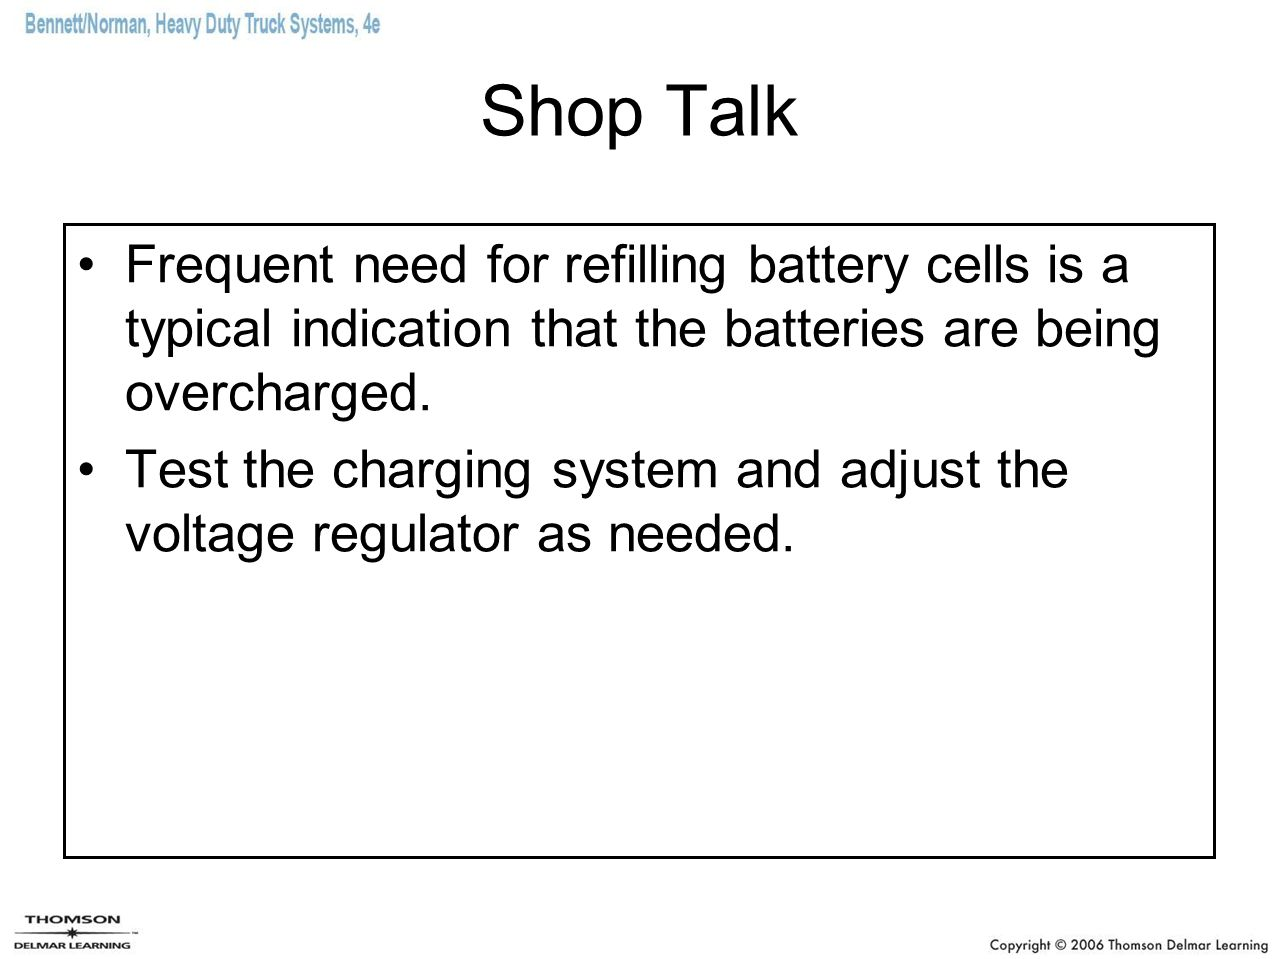 Shop Talk Frequent need for refilling battery cells is a typical indication that the batteries are being overcharged.